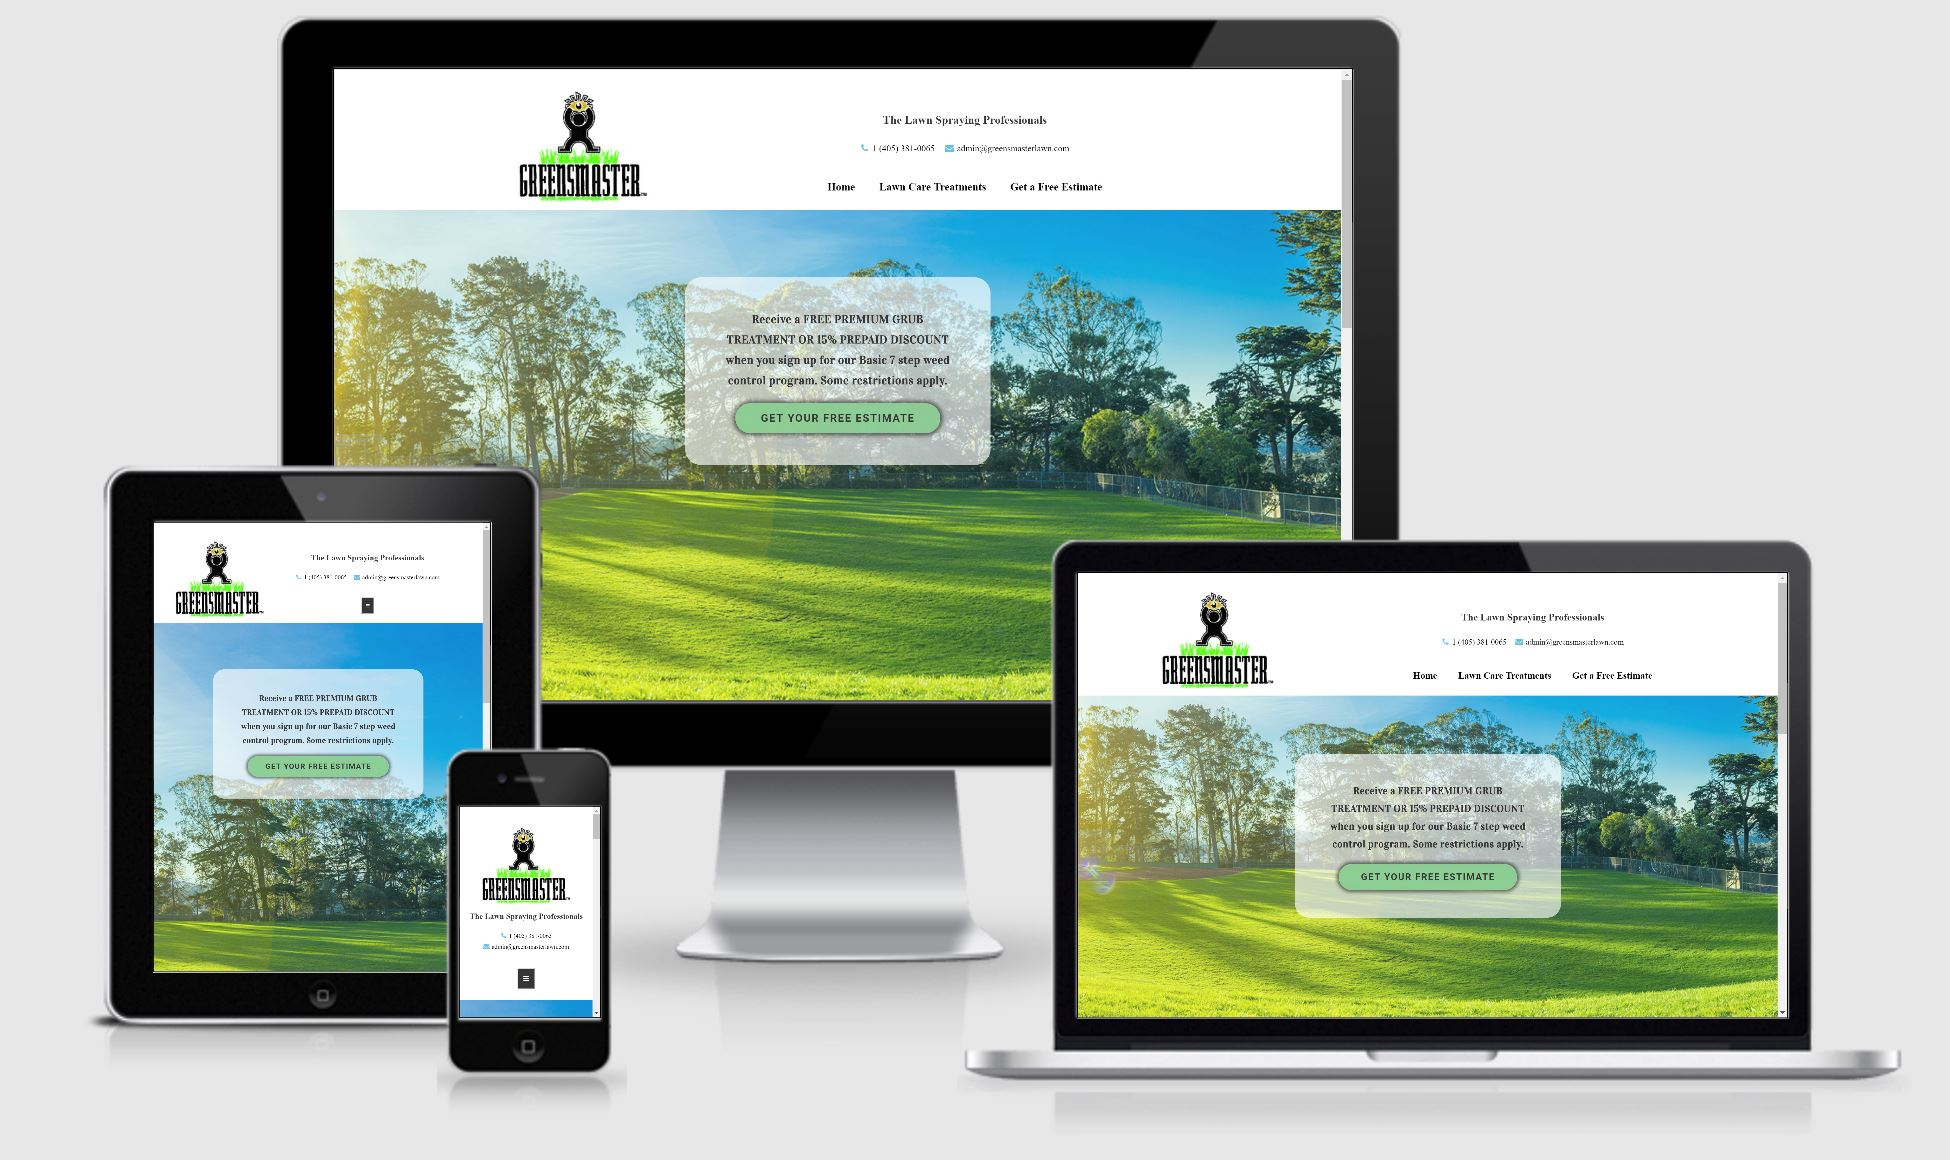 Greensmaster Lawn website makeover